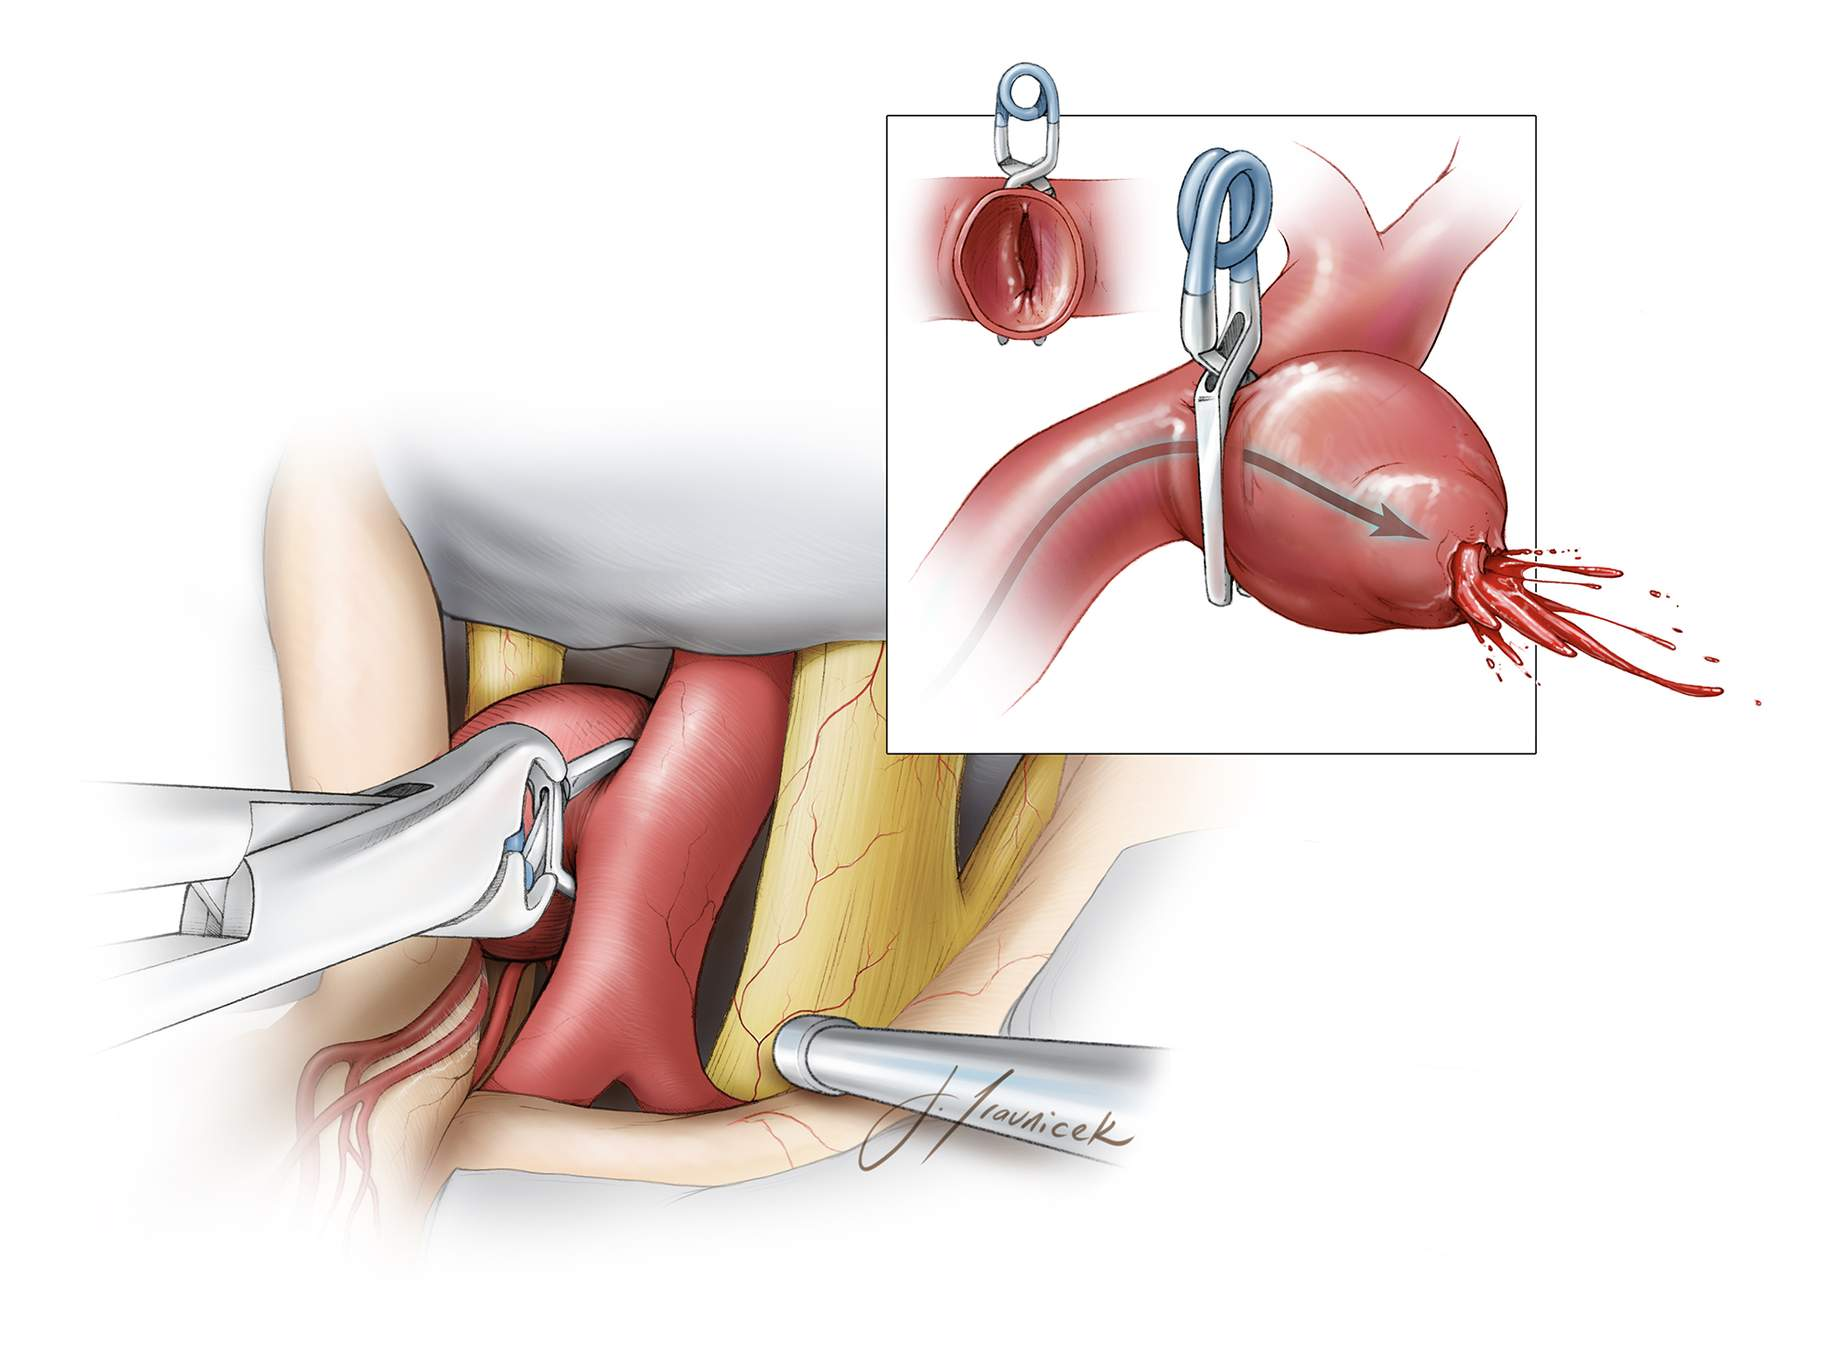 Figure 2: In addition to improper clip size and placement, partial closure of the clip blades can be caused by atherosclerosis at the neck and/or perpendicular rather than parallel (to the parent vessel) clip application. This technical error most commonly occurs for PCoA aneurysms.